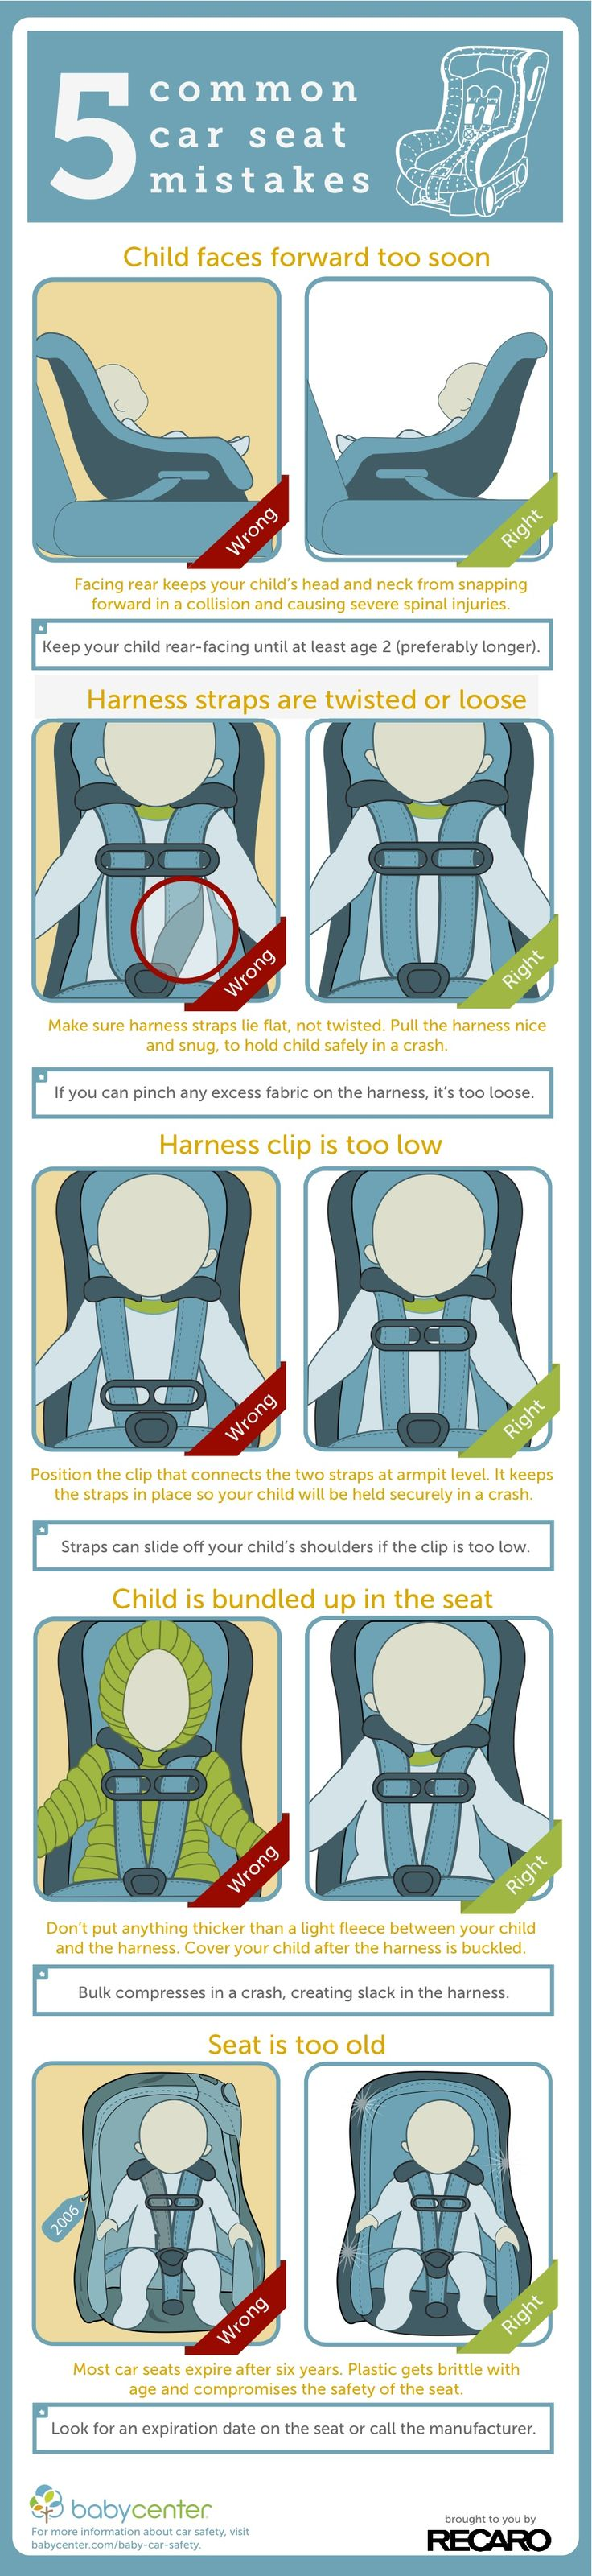 5 car seat mistakes to avoid  Fantastic for many toddlershttp://www.travelsystemsprams.com/  My Sister likes thishttp://www.travelsystemsprams.com/